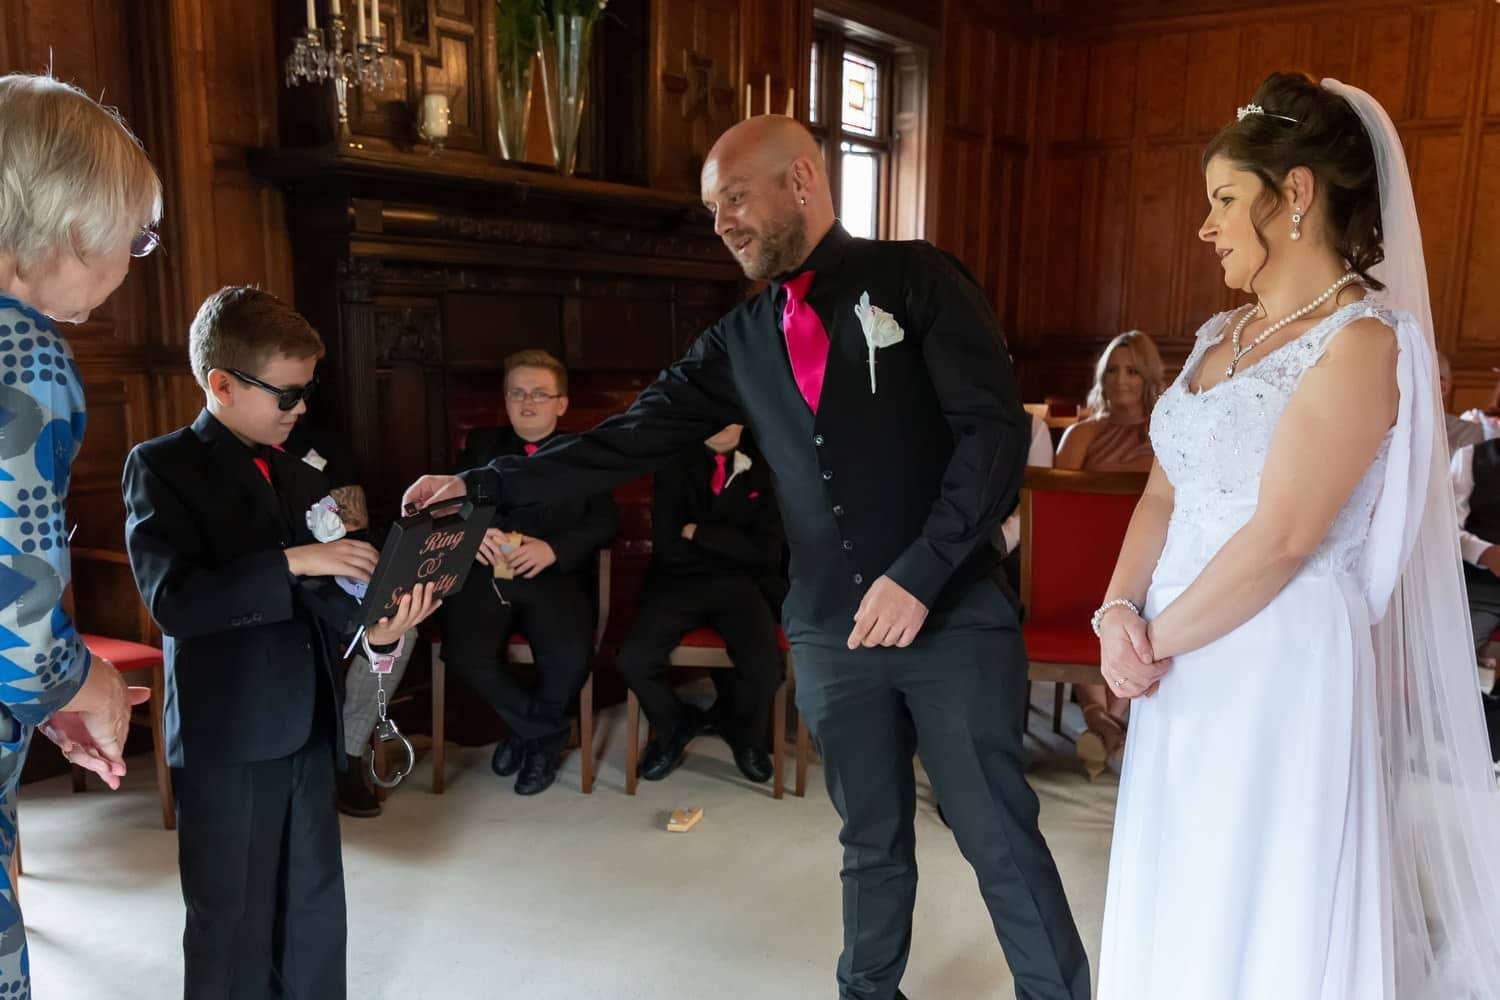 Groom takes a ring from the ring bearer at Carlisle Registry Office